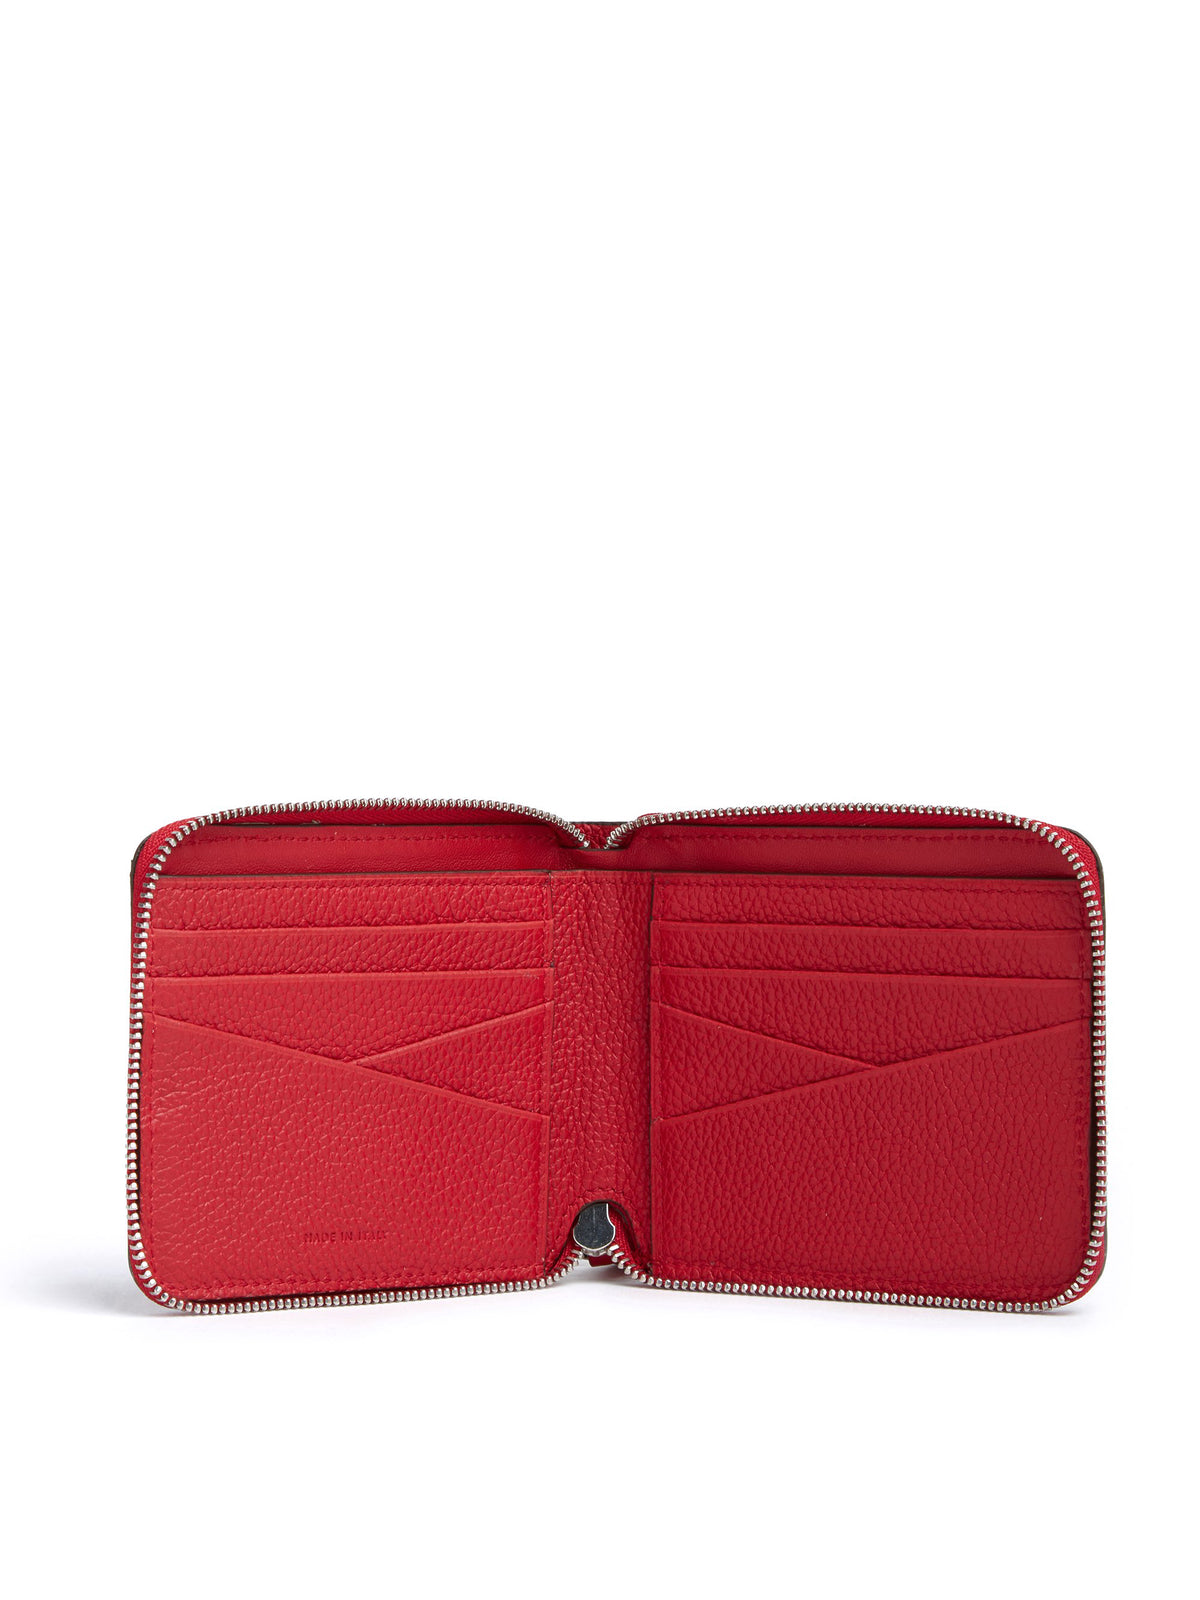 Mark Cross Bi-Fold Leather Zip Wallet Tumbled Grain Mc Red Interior